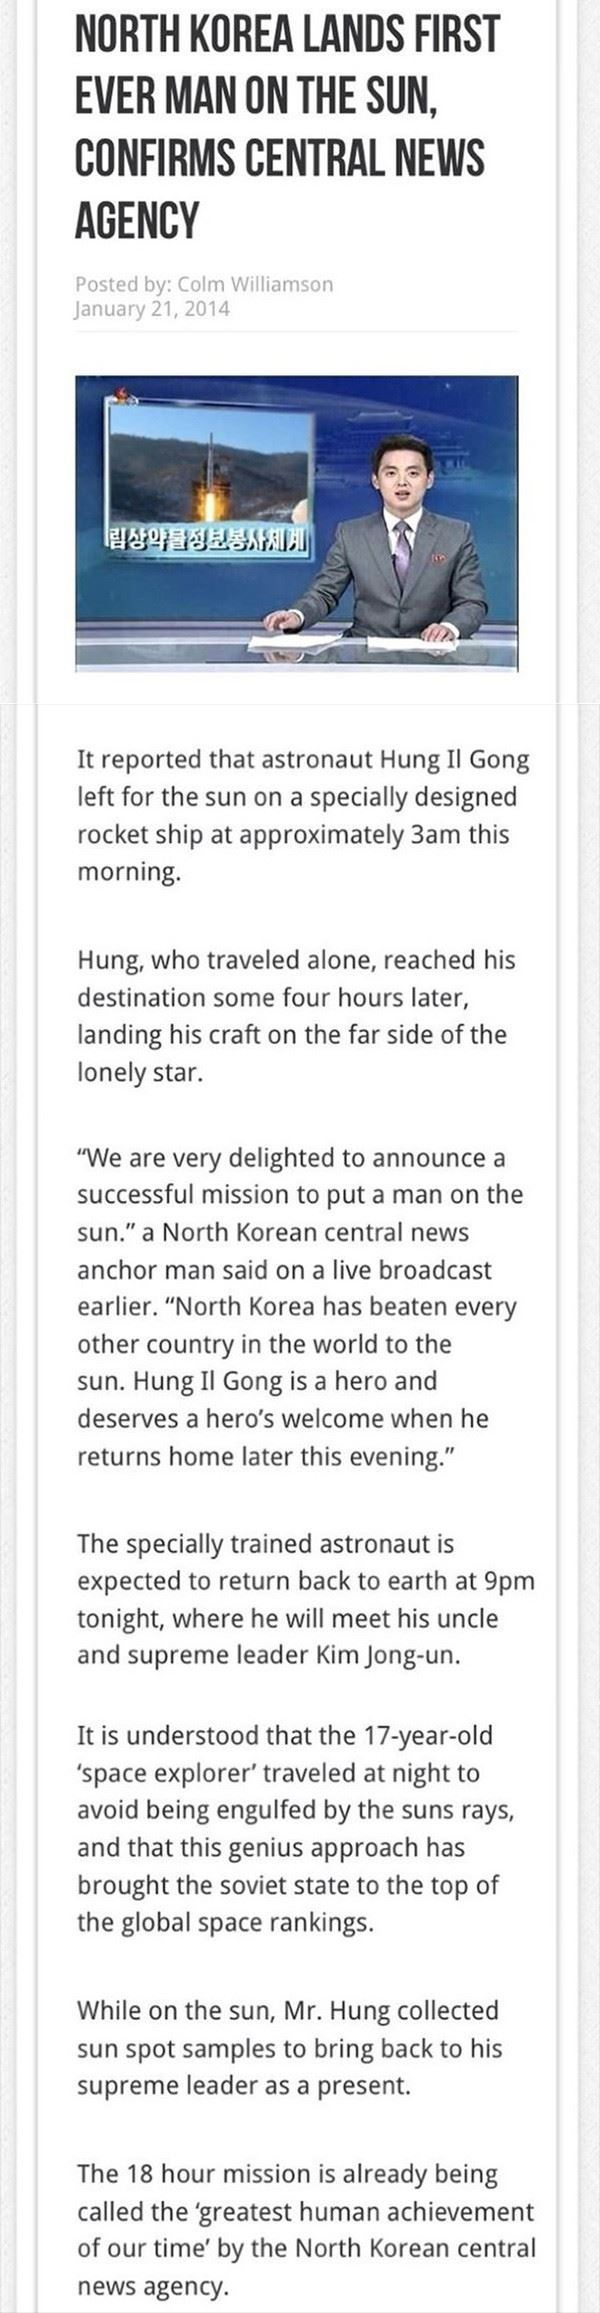 North Korea lands on sun